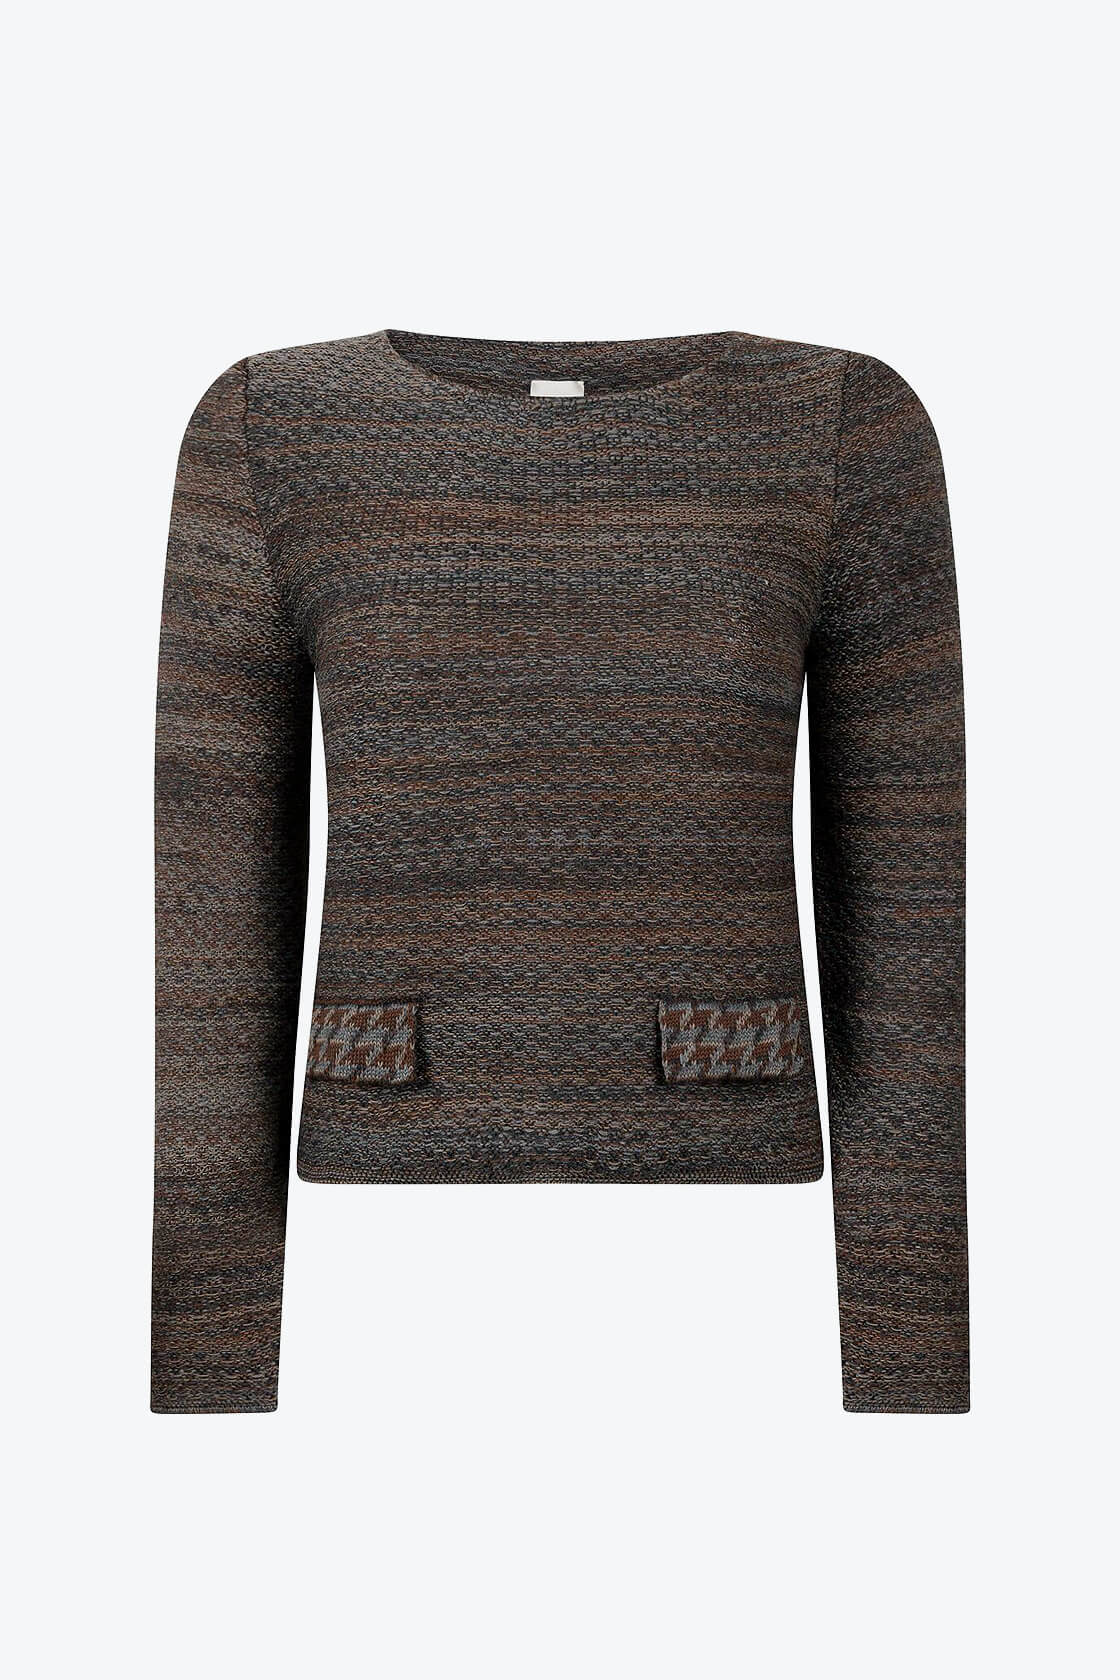 Timeless Feminine Jumper In Audrey Hepburn Style Tweed Raven